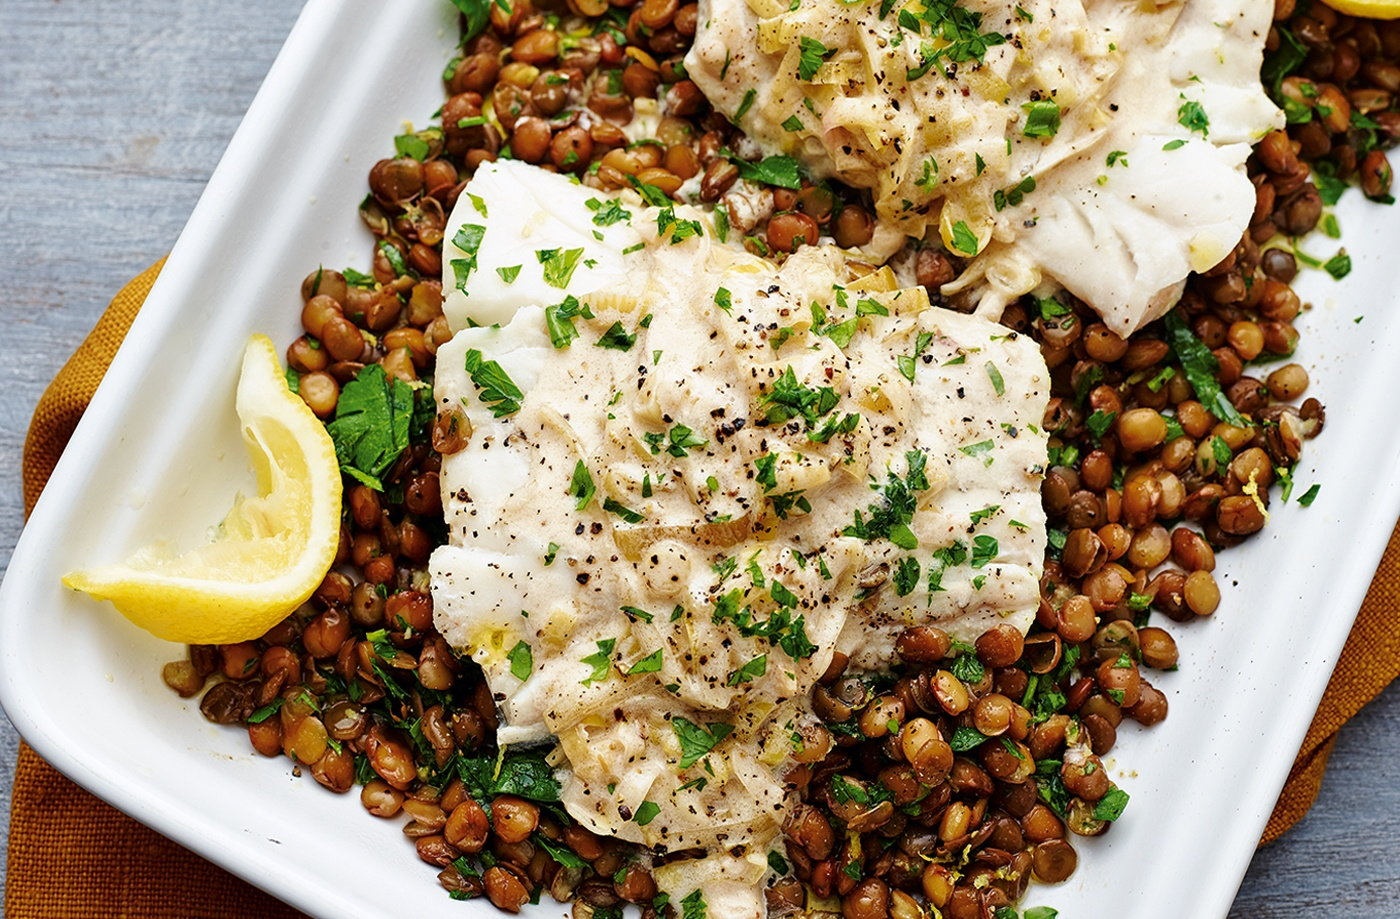 Cider-braised cod with lentils recipe